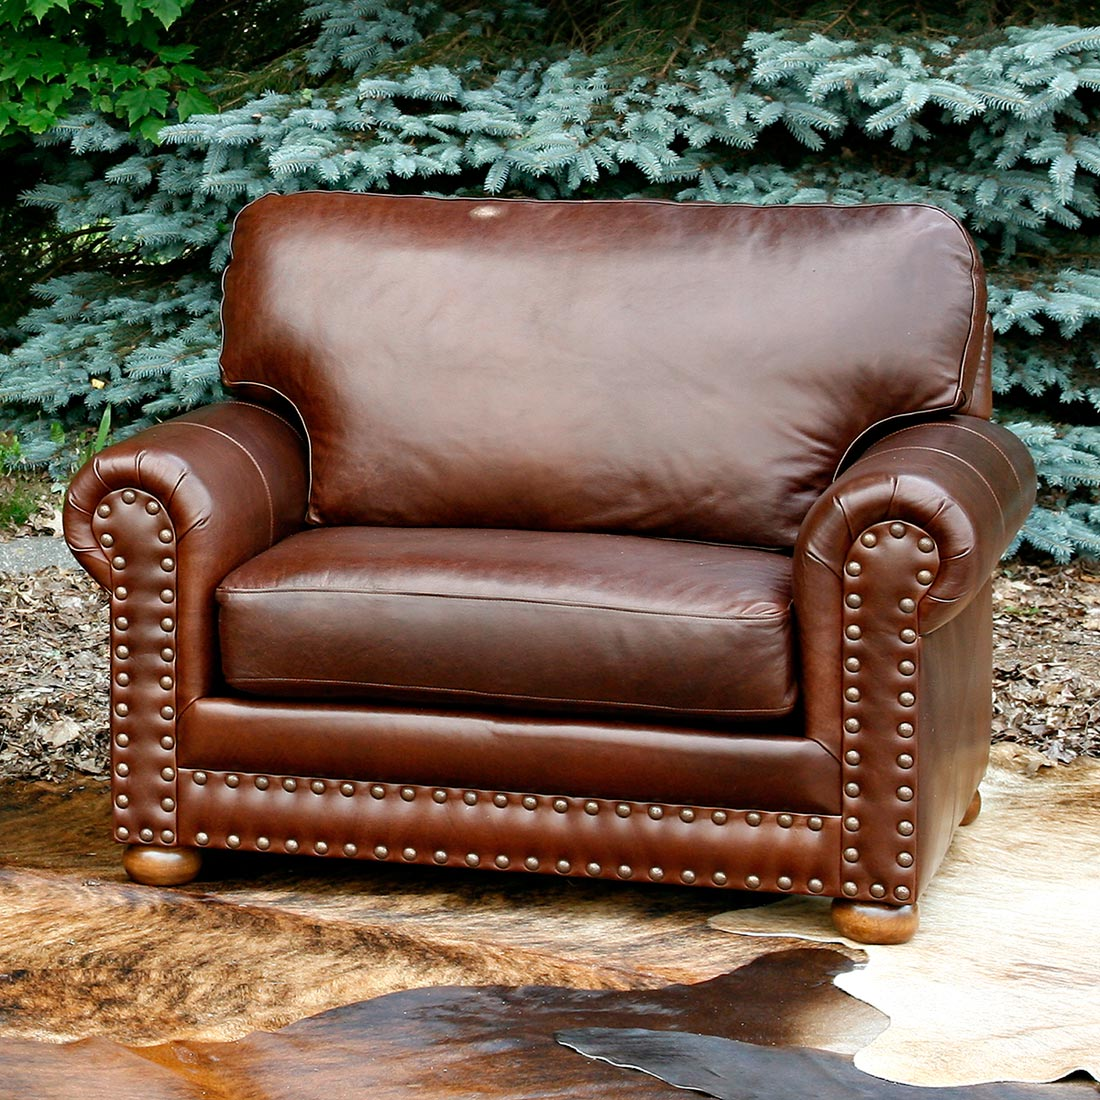 Black Forest Decor Hinsdale chinchilla oversized chair